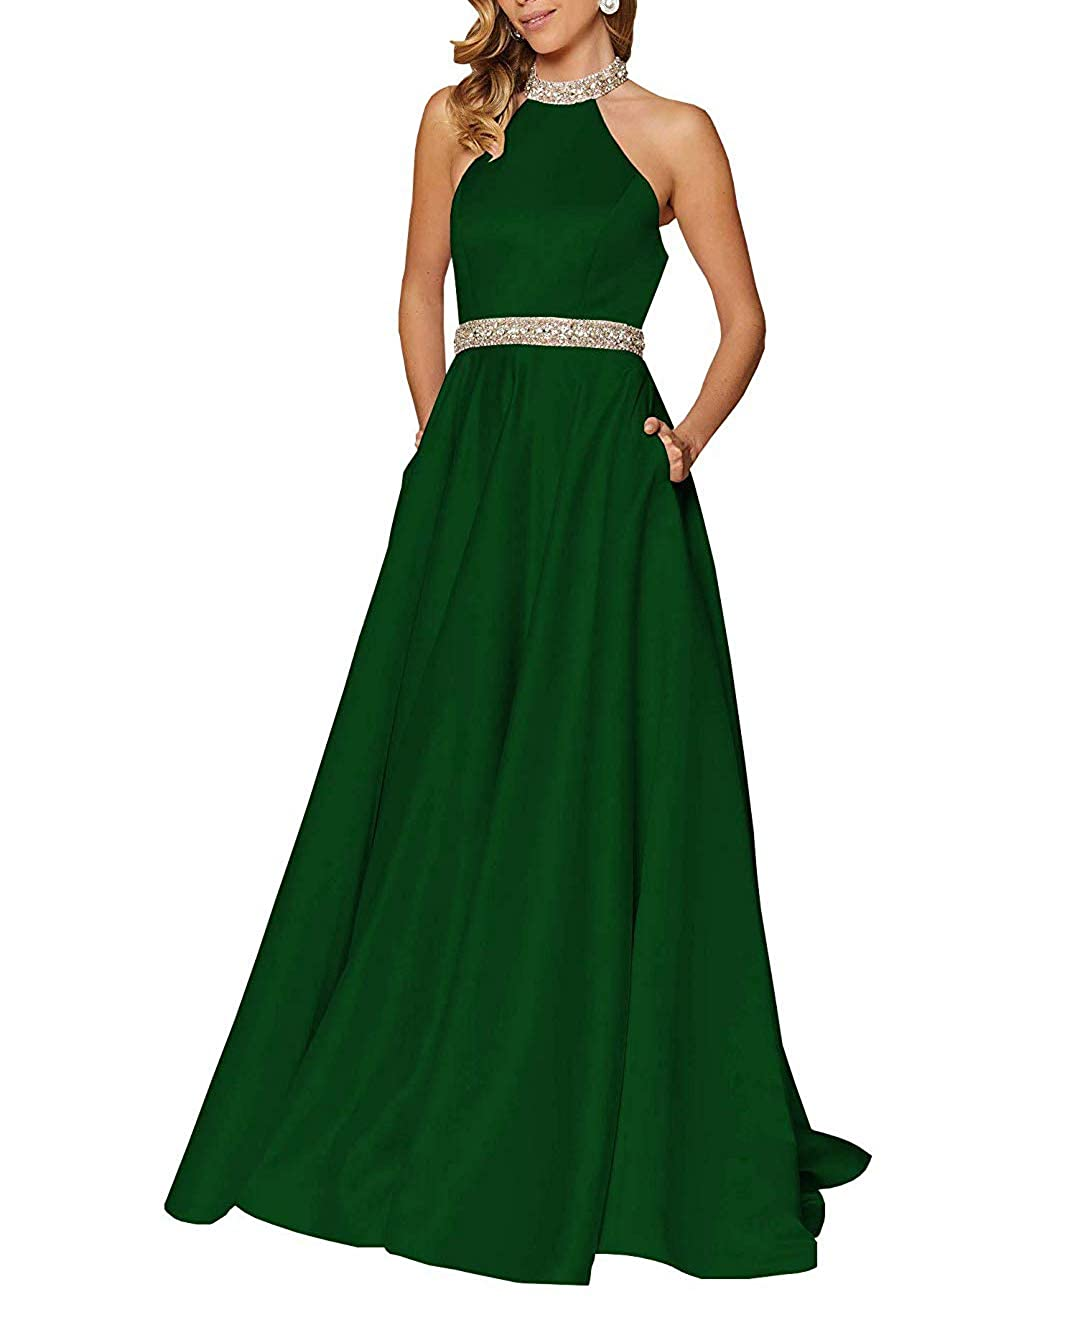 Dark Green RTTUTED Satin Beaded Long Prom Gown with Pockets for Formal Wedding Dress Evening